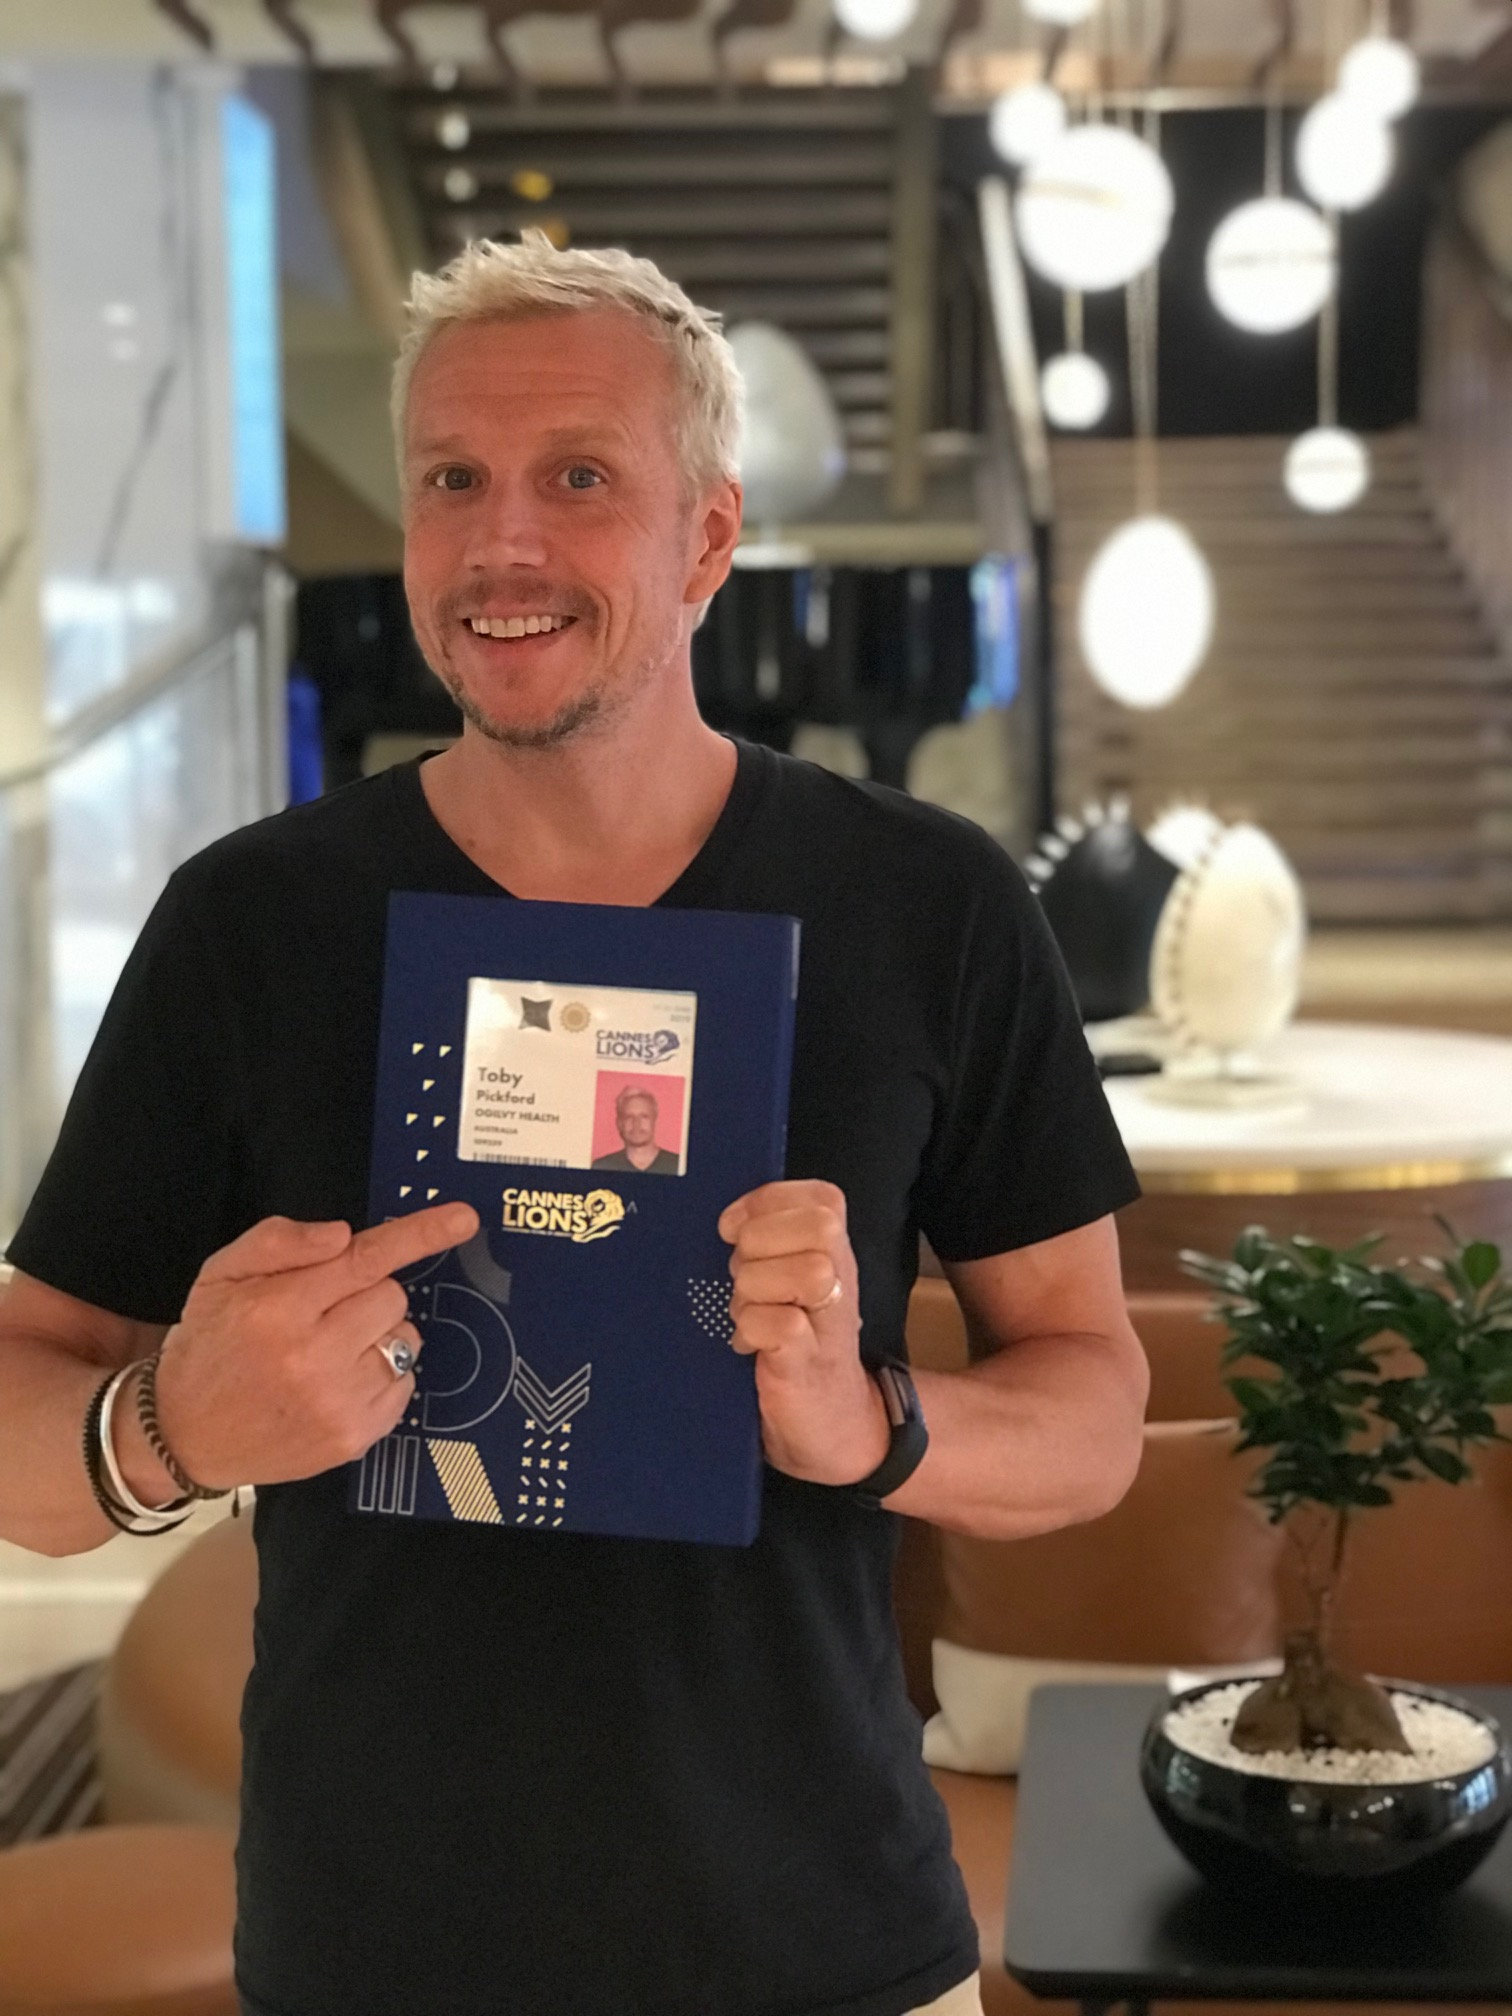 Toby Pickford's Cannes Diary #1